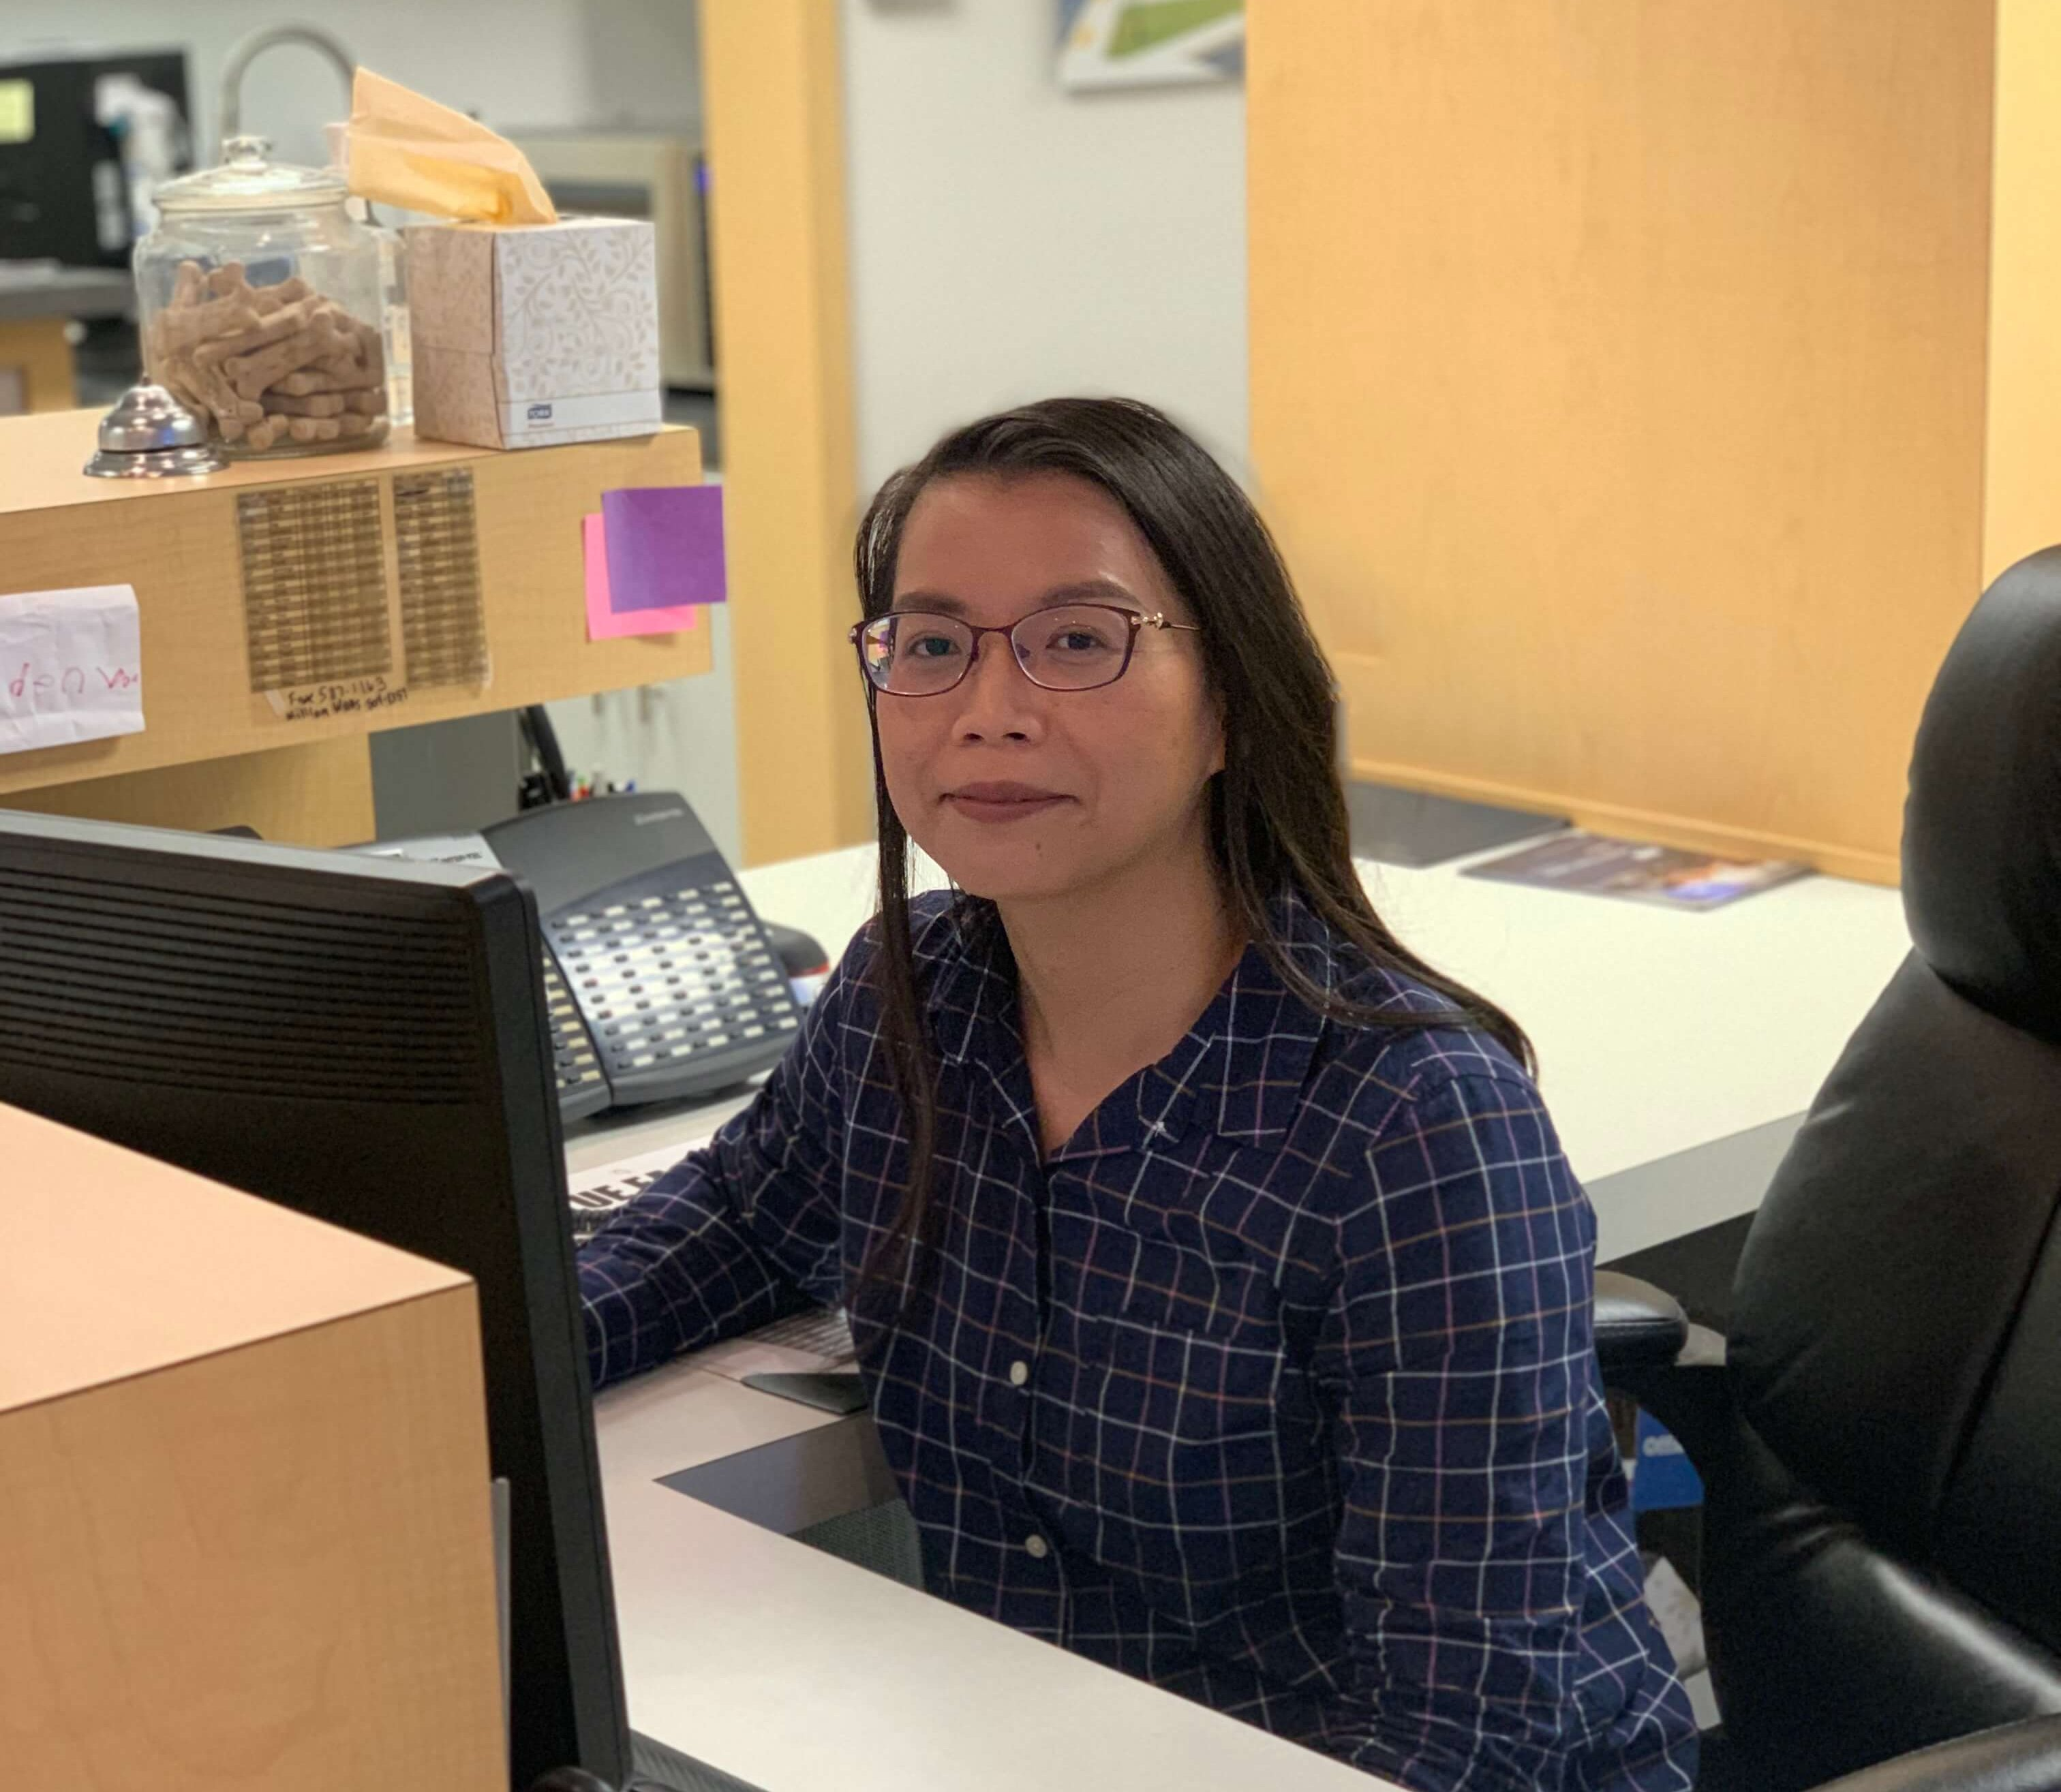 Team Tuesday: Meet Phaly Kong, Receptionist Extraordinaire